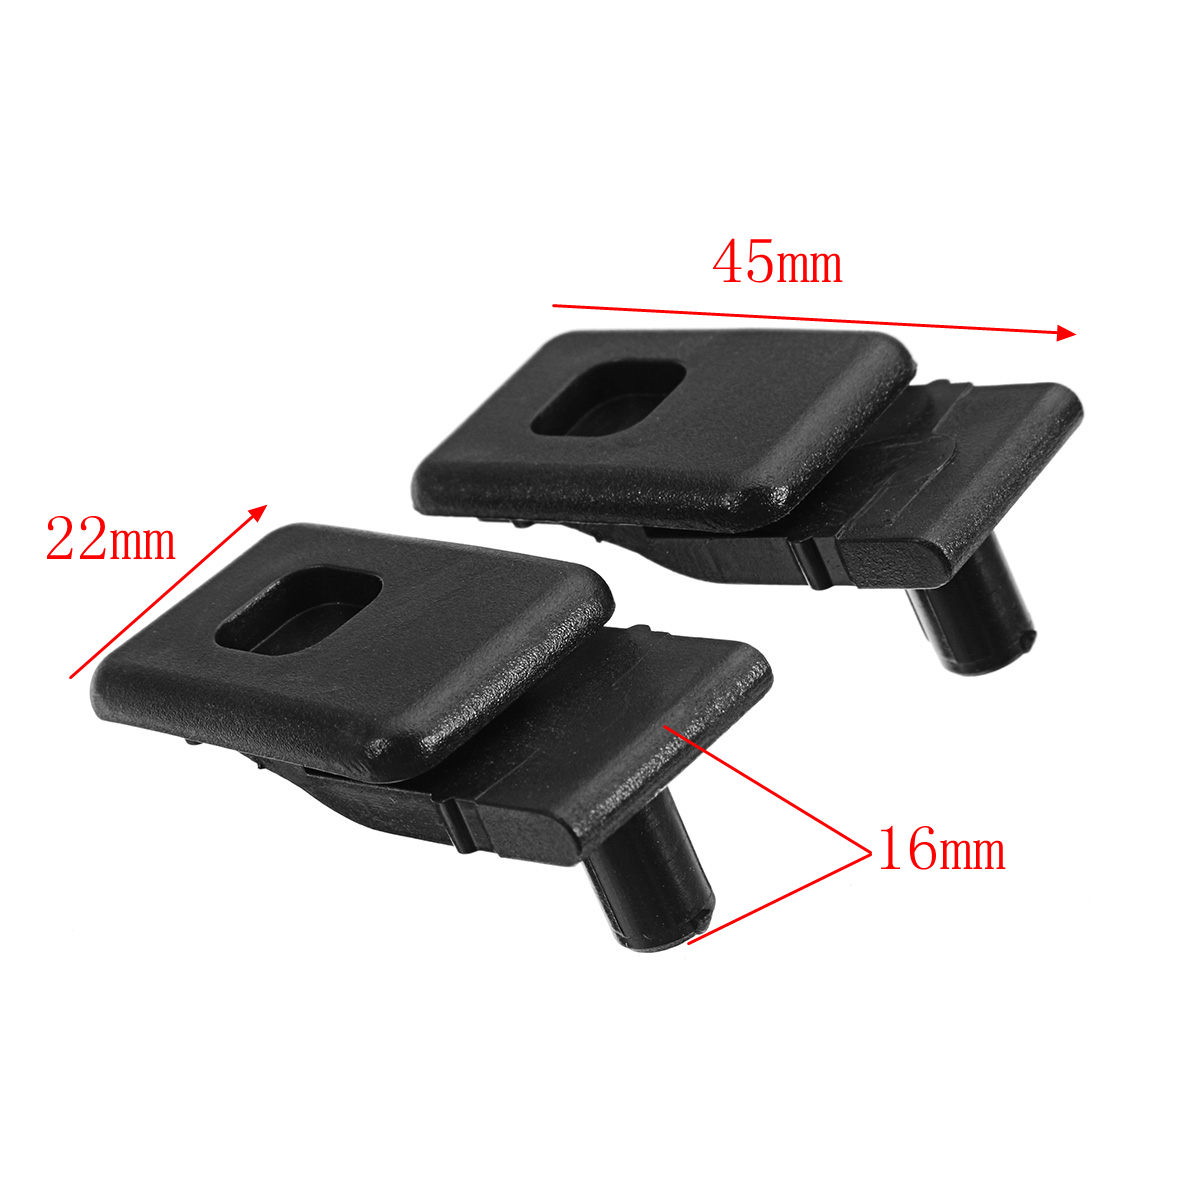 US $1 57 12% OFF|2pcs Car Glove Box Buckle Clip Auto Fastener Snap for  Chevrolet/Cruze 2009 2016-in Glove Boxes from Automobiles & Motorcycles on